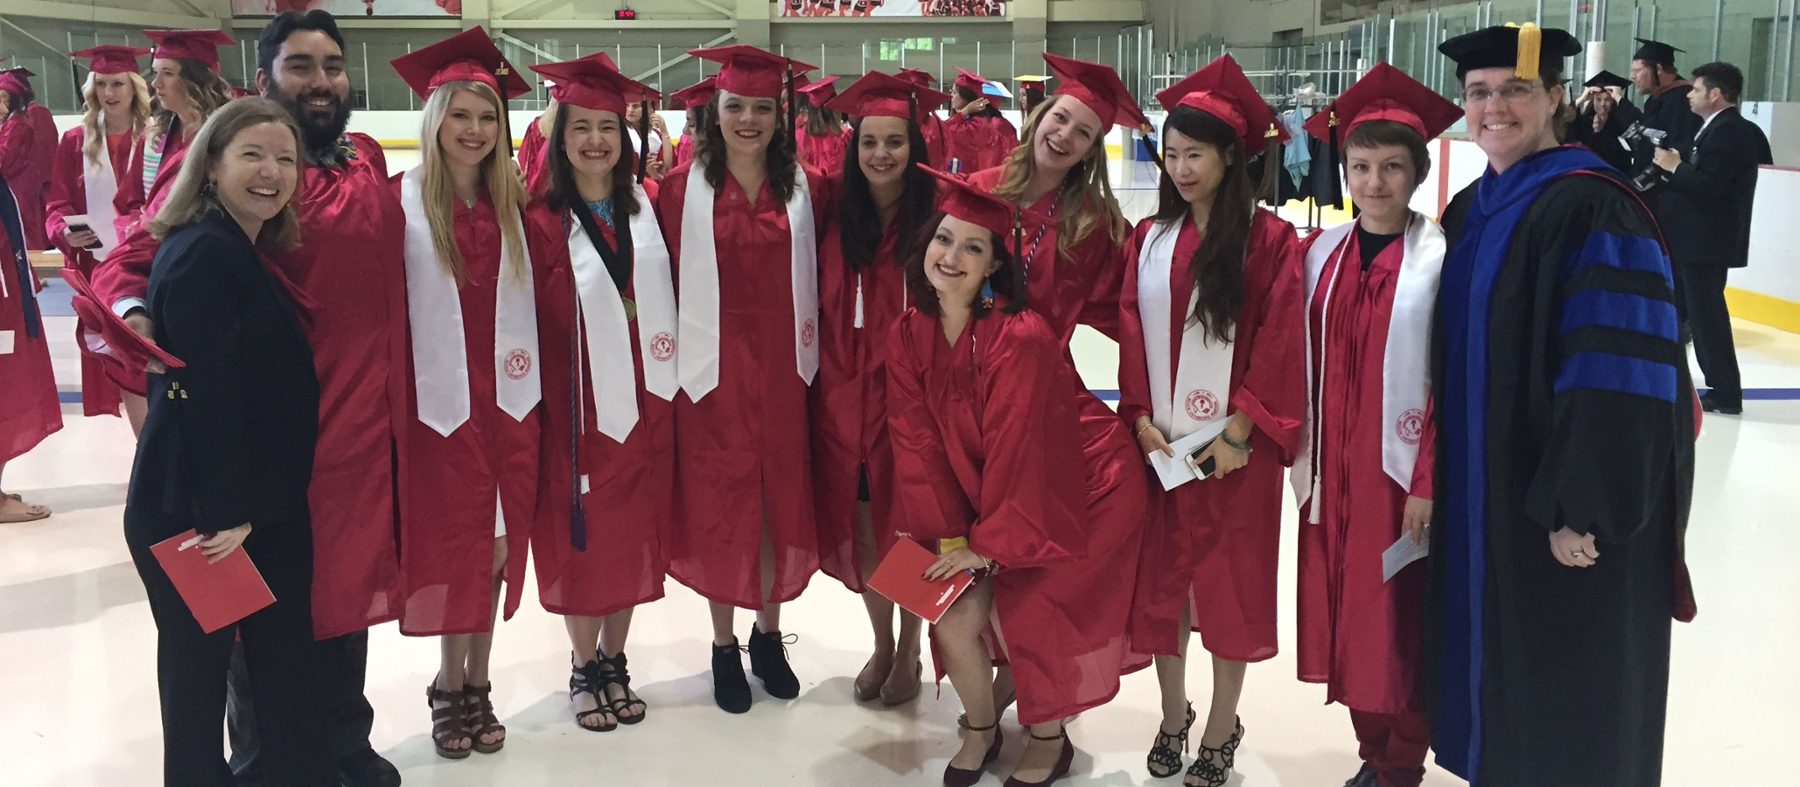 Recent art education graduates pose at Goggin Ice Arena